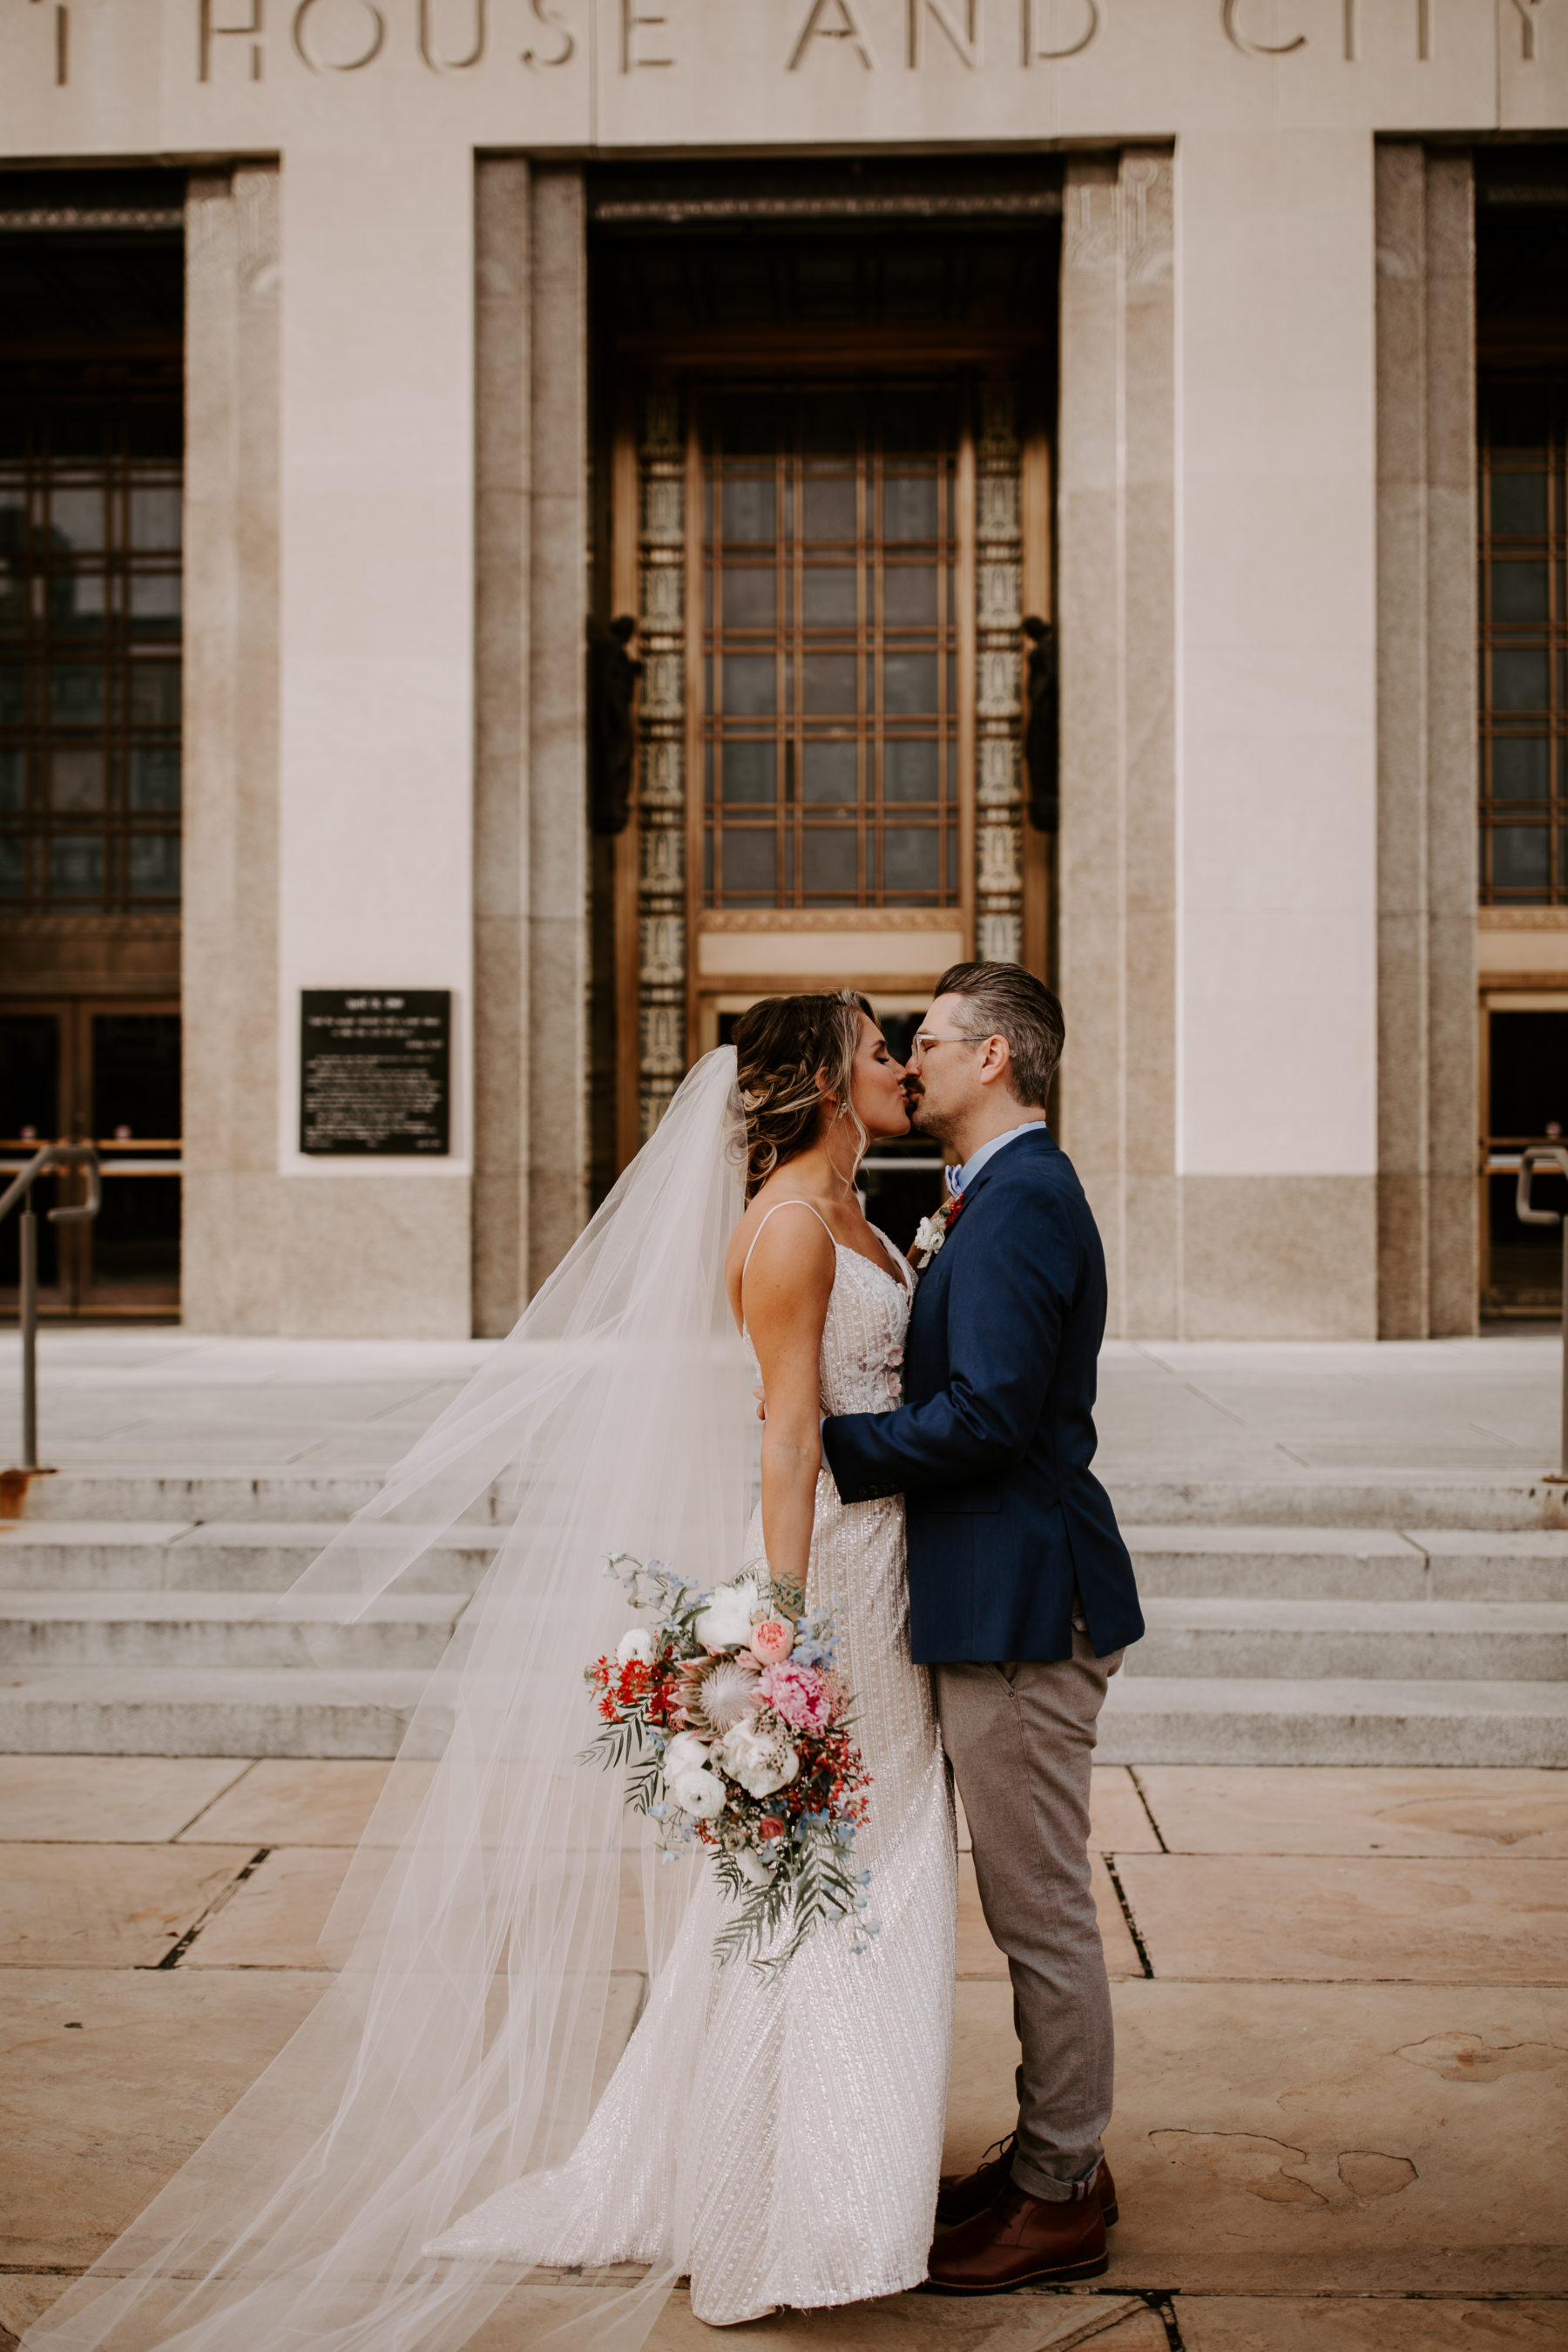 The Big Fake Wedding Nashville Recap featured on Nashville Bride Guide